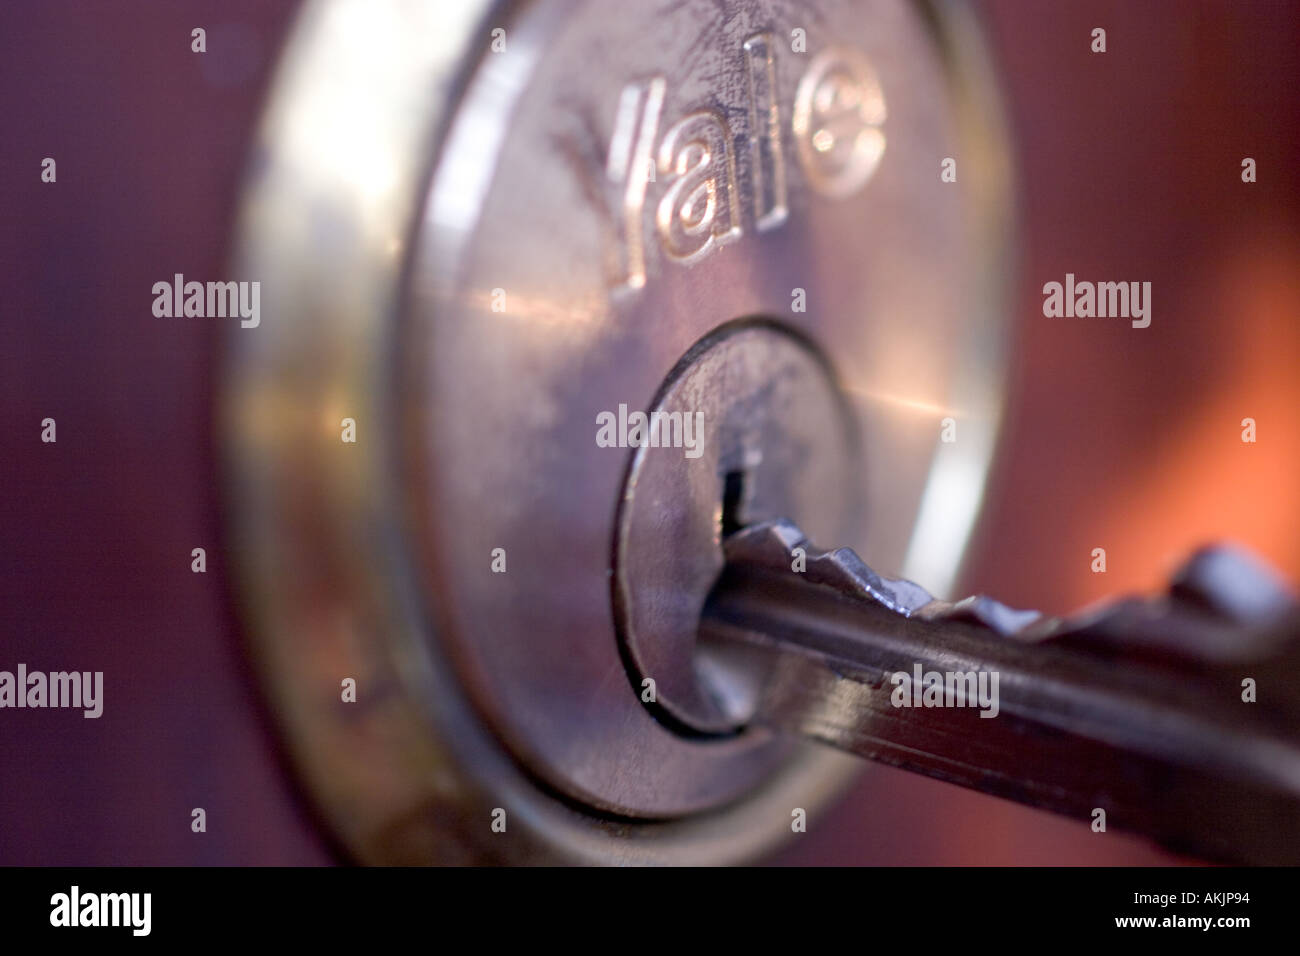 Unlocking locking front door Yale key in Lock & Unlocking locking front door Yale key in Lock Stock Photo: 4902547 ...